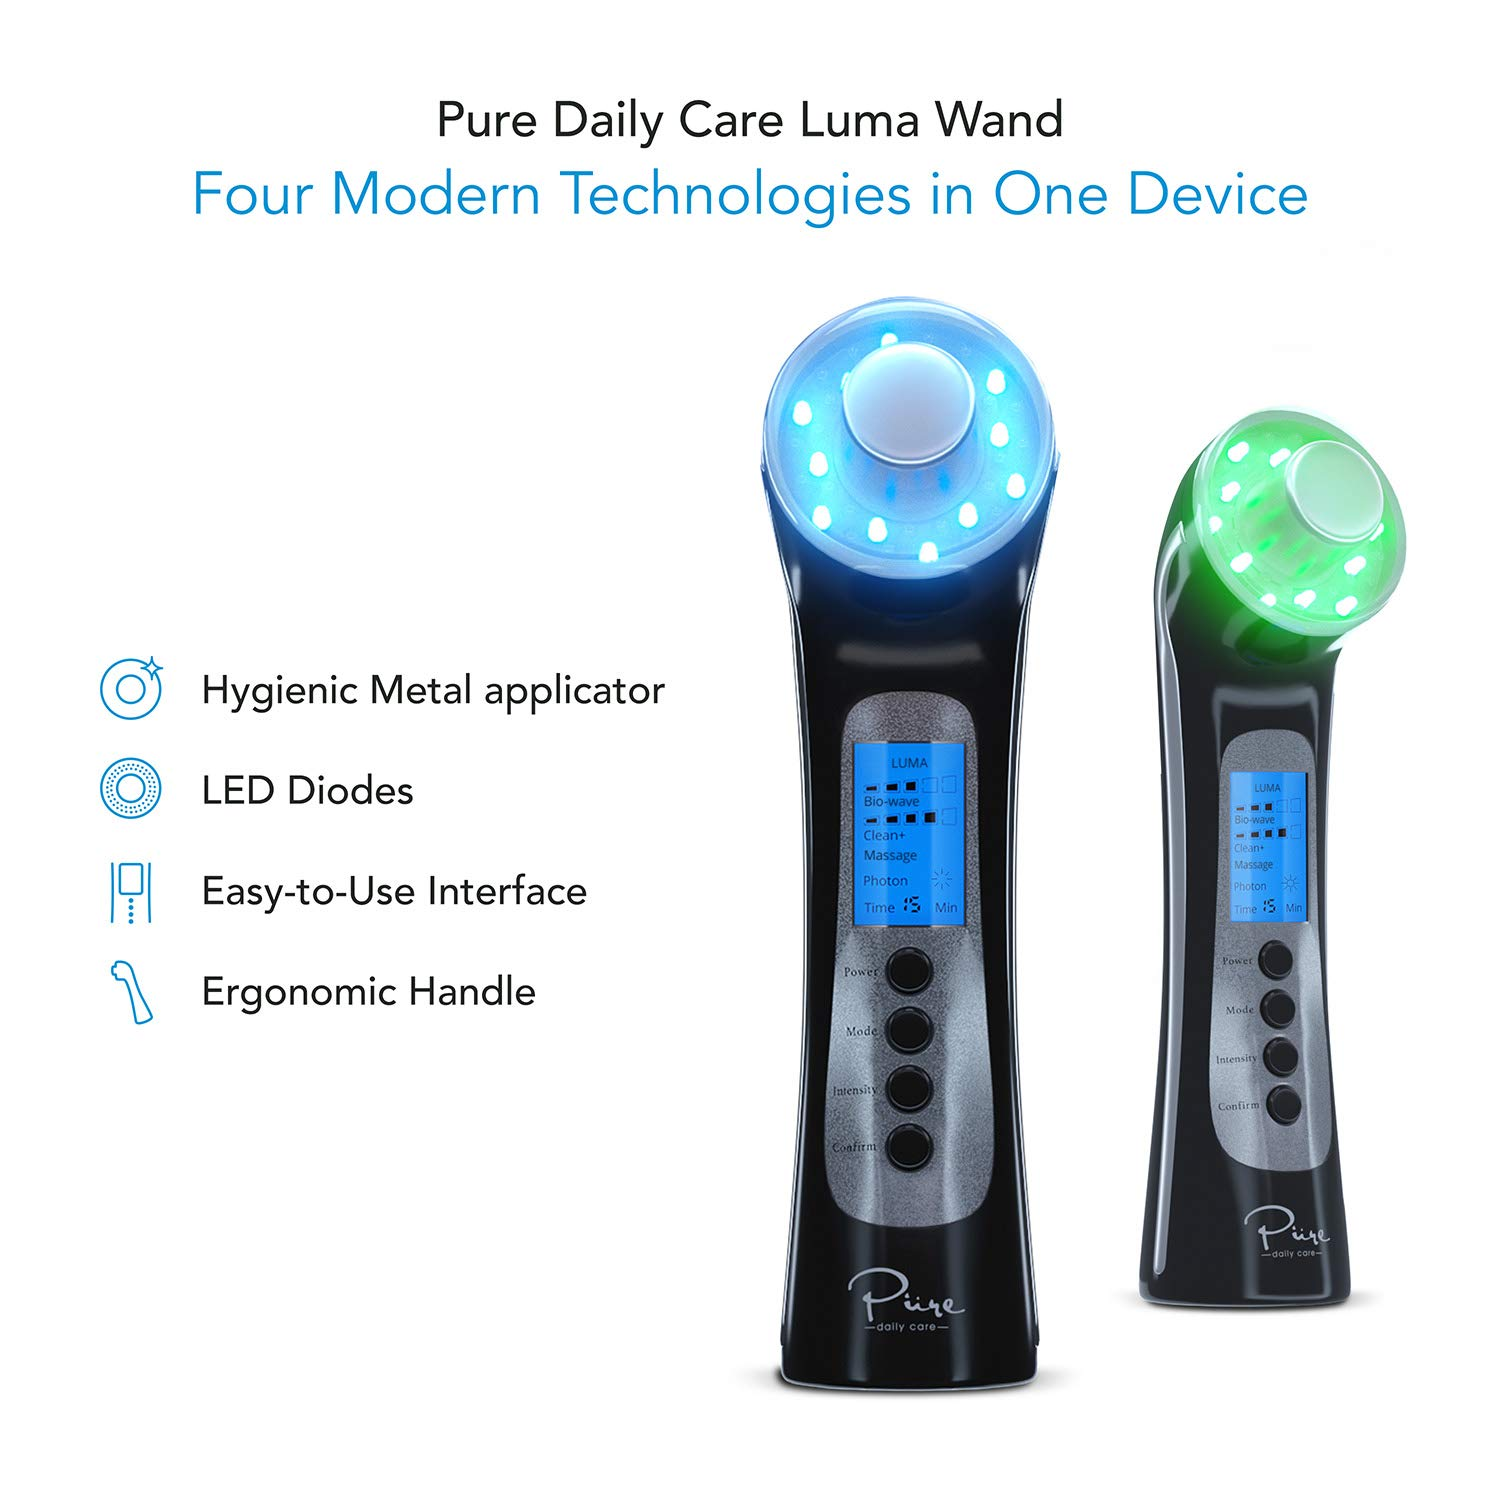 Luma Skin Therapy Wand - 4-in-1 Natural Facial Skincare Treatments - LED Light Machine+Ion Therapy+Wave Stimulation+Massage-Acne Treatment-Anti Aging-Lift & Firm-Red-Blue-Green-Tighten Skin-Wrinkles by Pure Daily Care (Image #2)